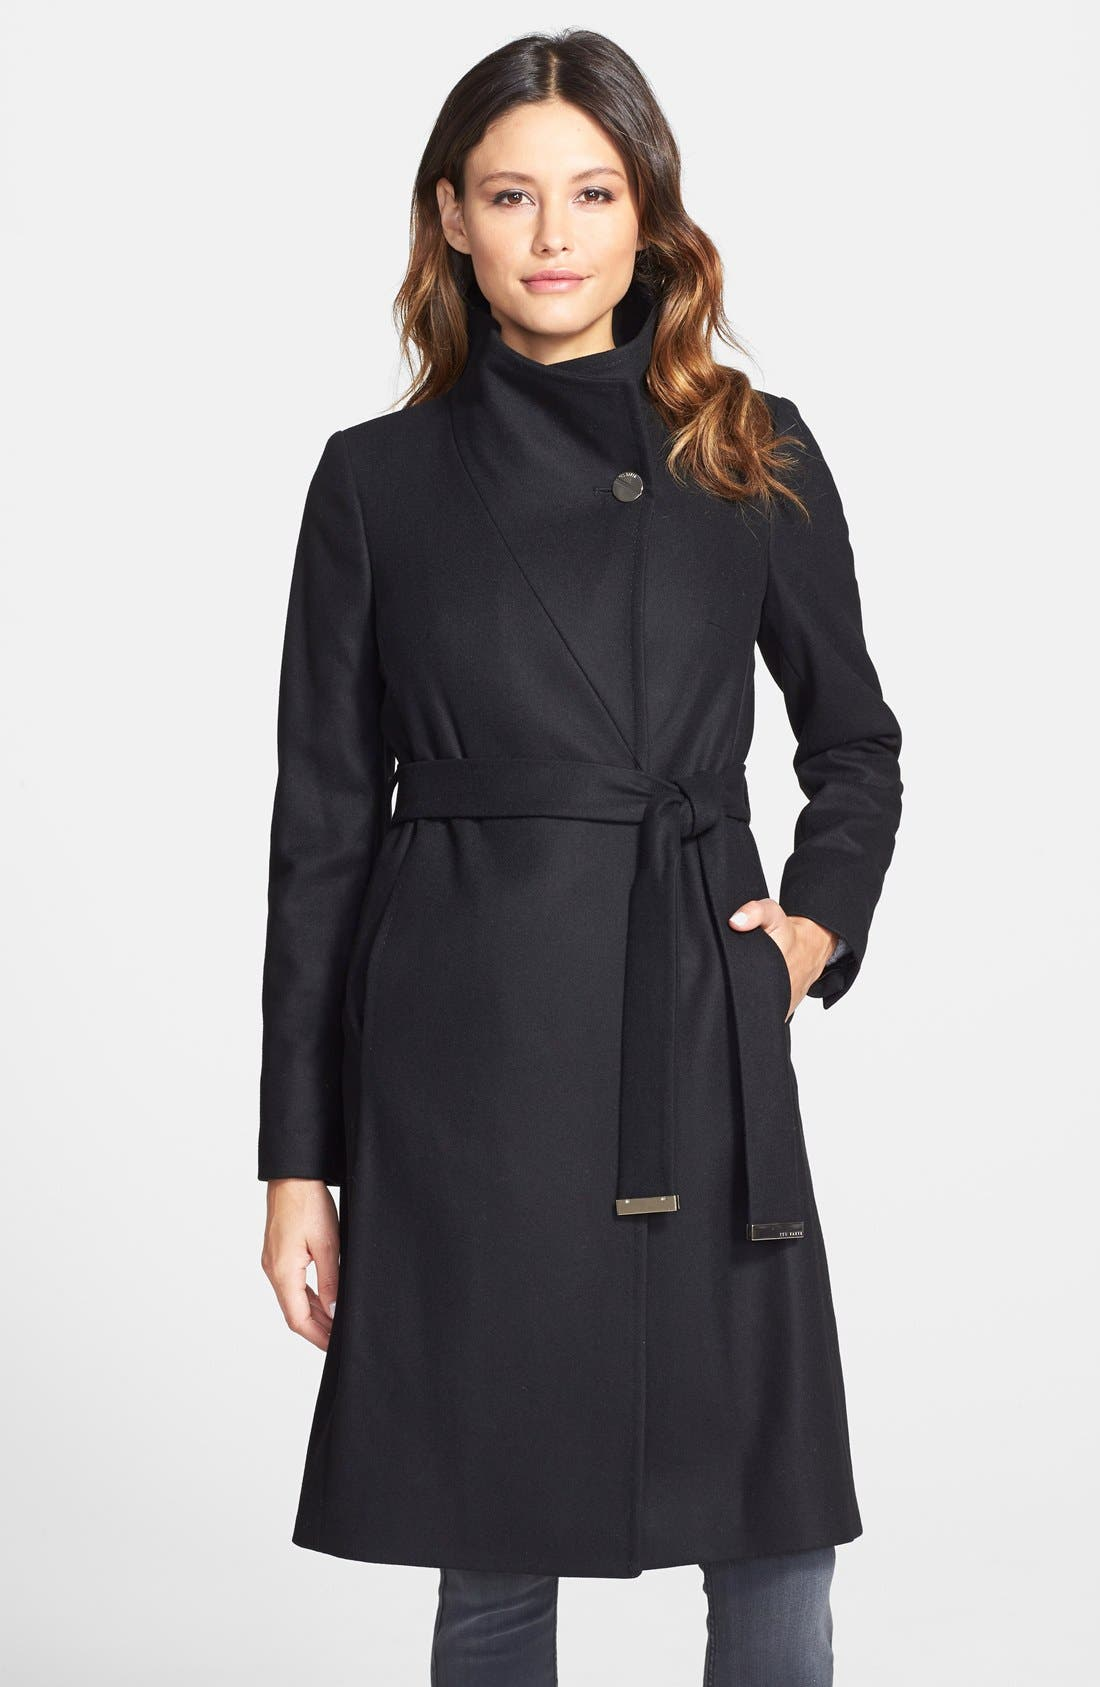 'Nevia' Stand Collar Belted Wrap Coat,                             Main thumbnail 1, color,                             001